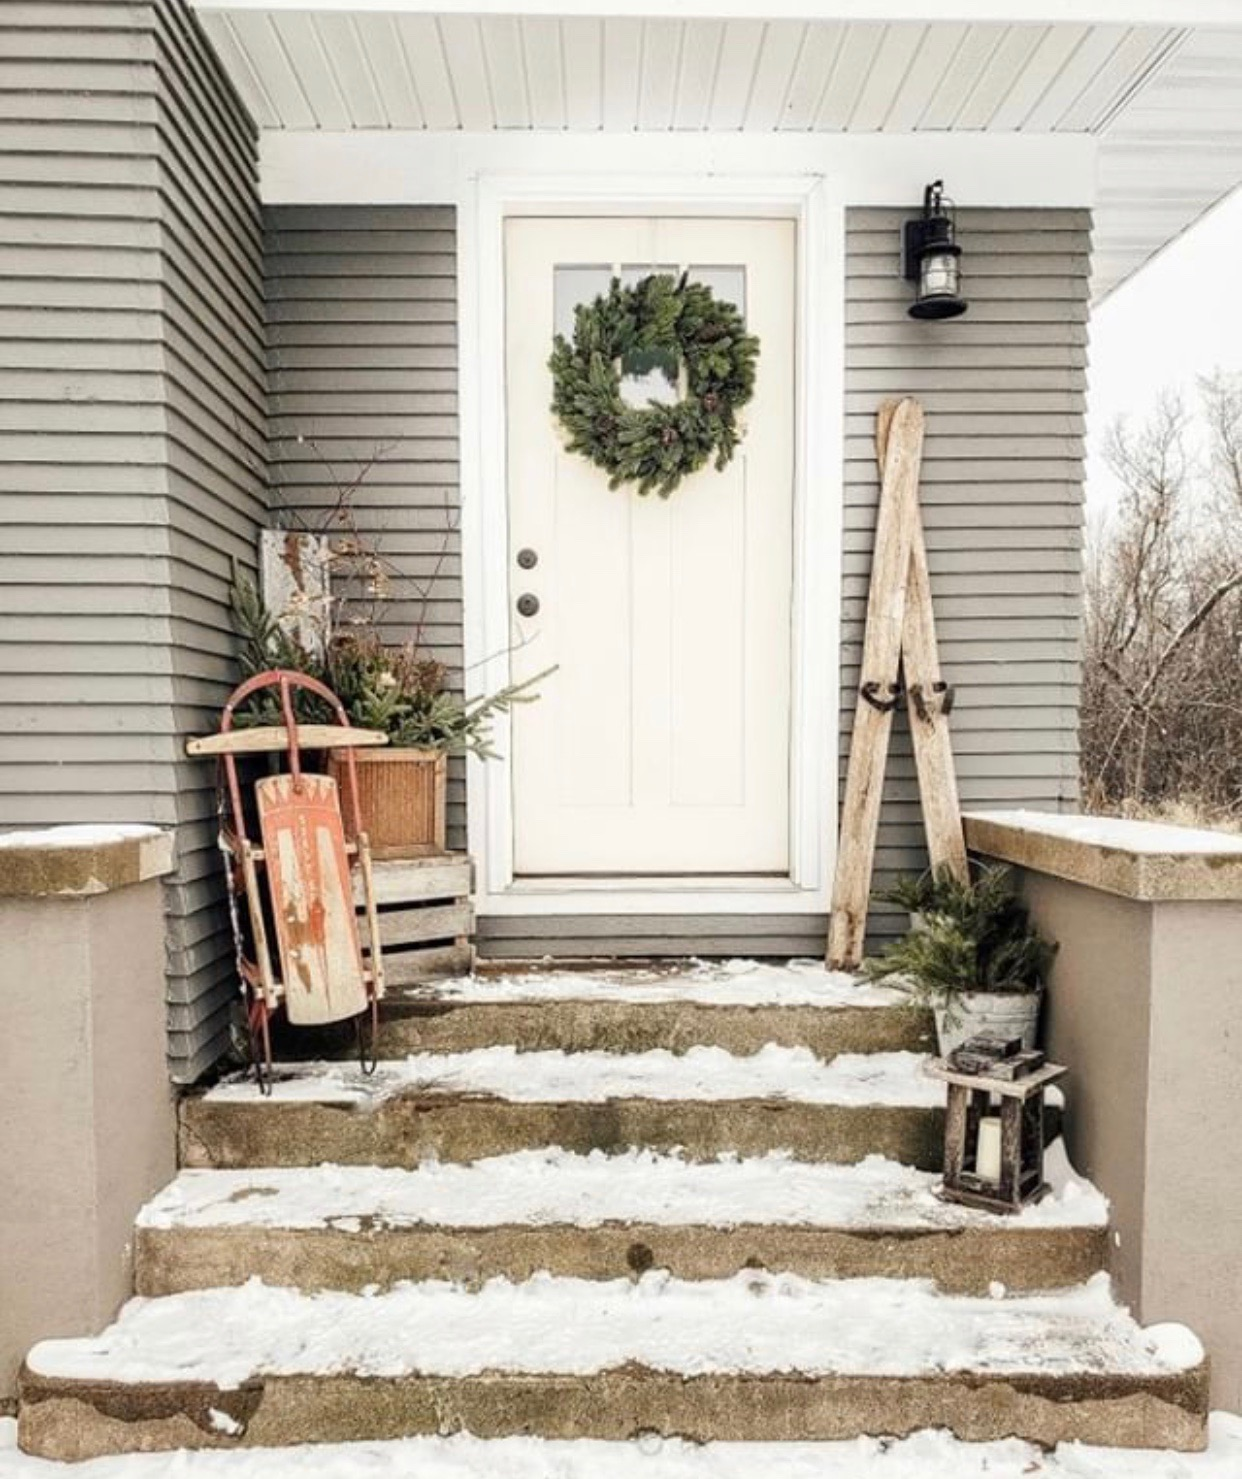 Christmas decorating ideas for porches by Farmhouse for 8 with a sled, skies and greenery and a lantern